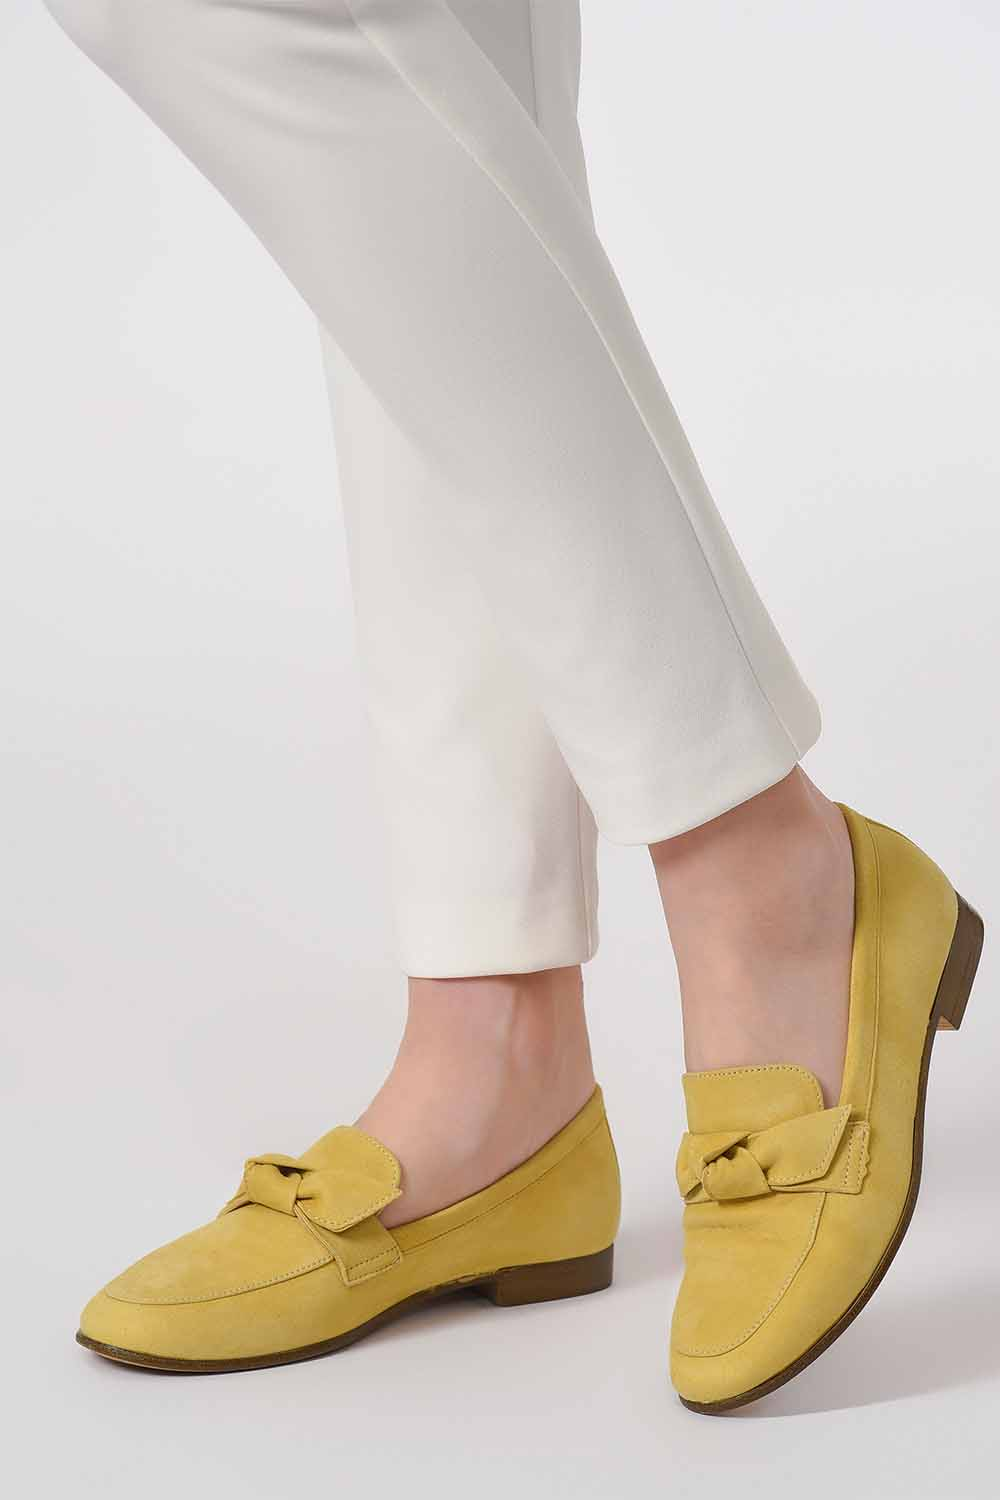 MIZALLE Suede Bow Leather Moccasins (Yellow) (1)